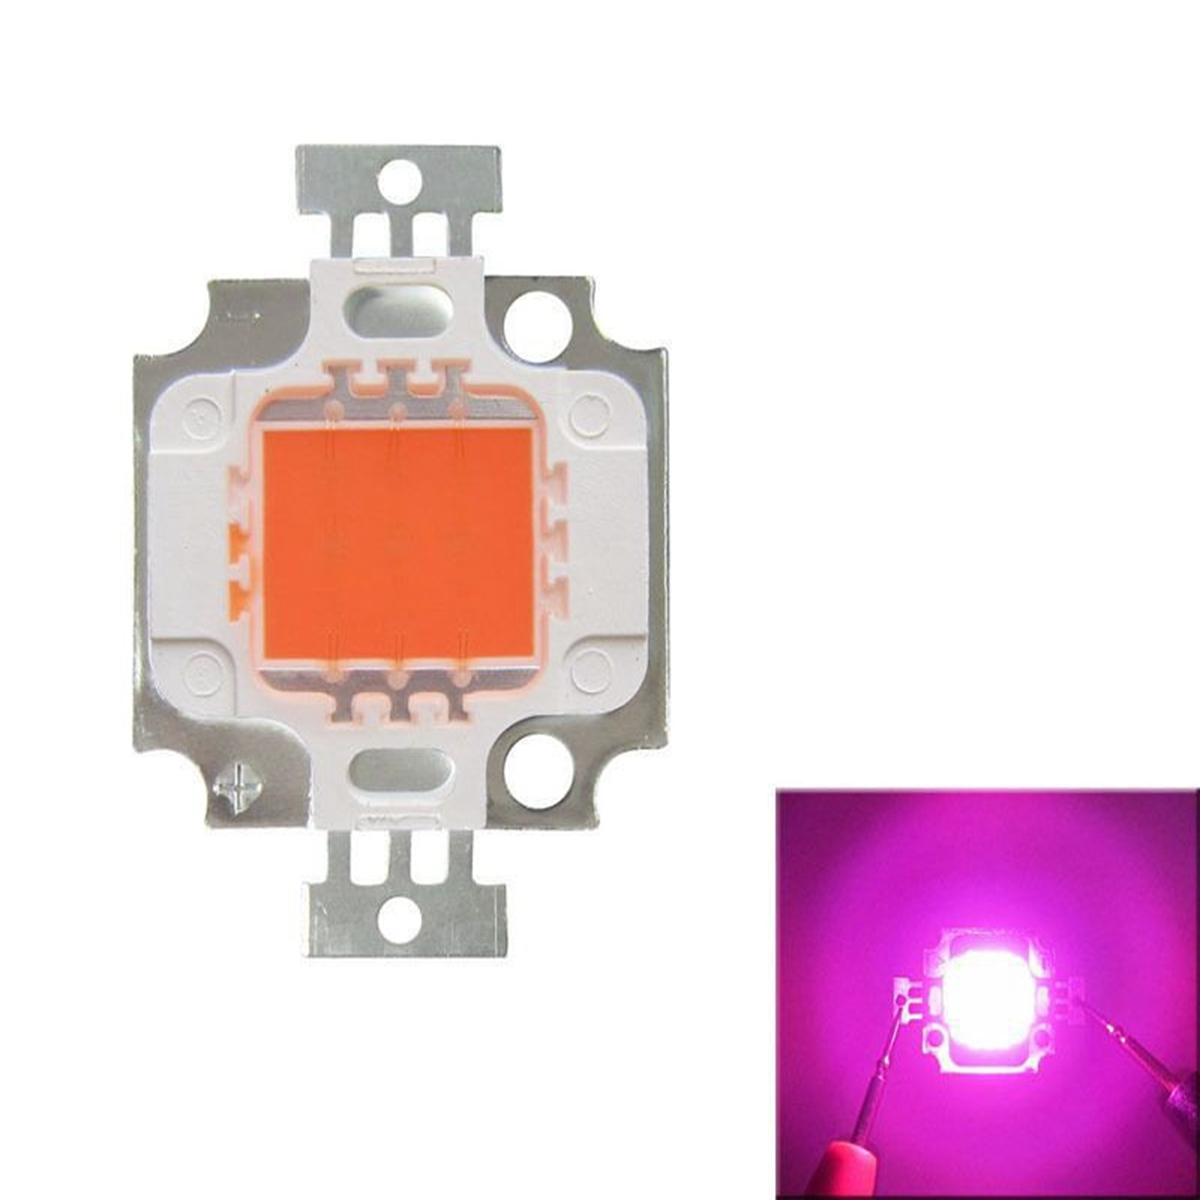 LED Chip Grow Light 10W Full Spectrum Pink Plant Lamp Diodes Growth Lighting For Garden Flowering Hydroponics System 9-12V 900mA